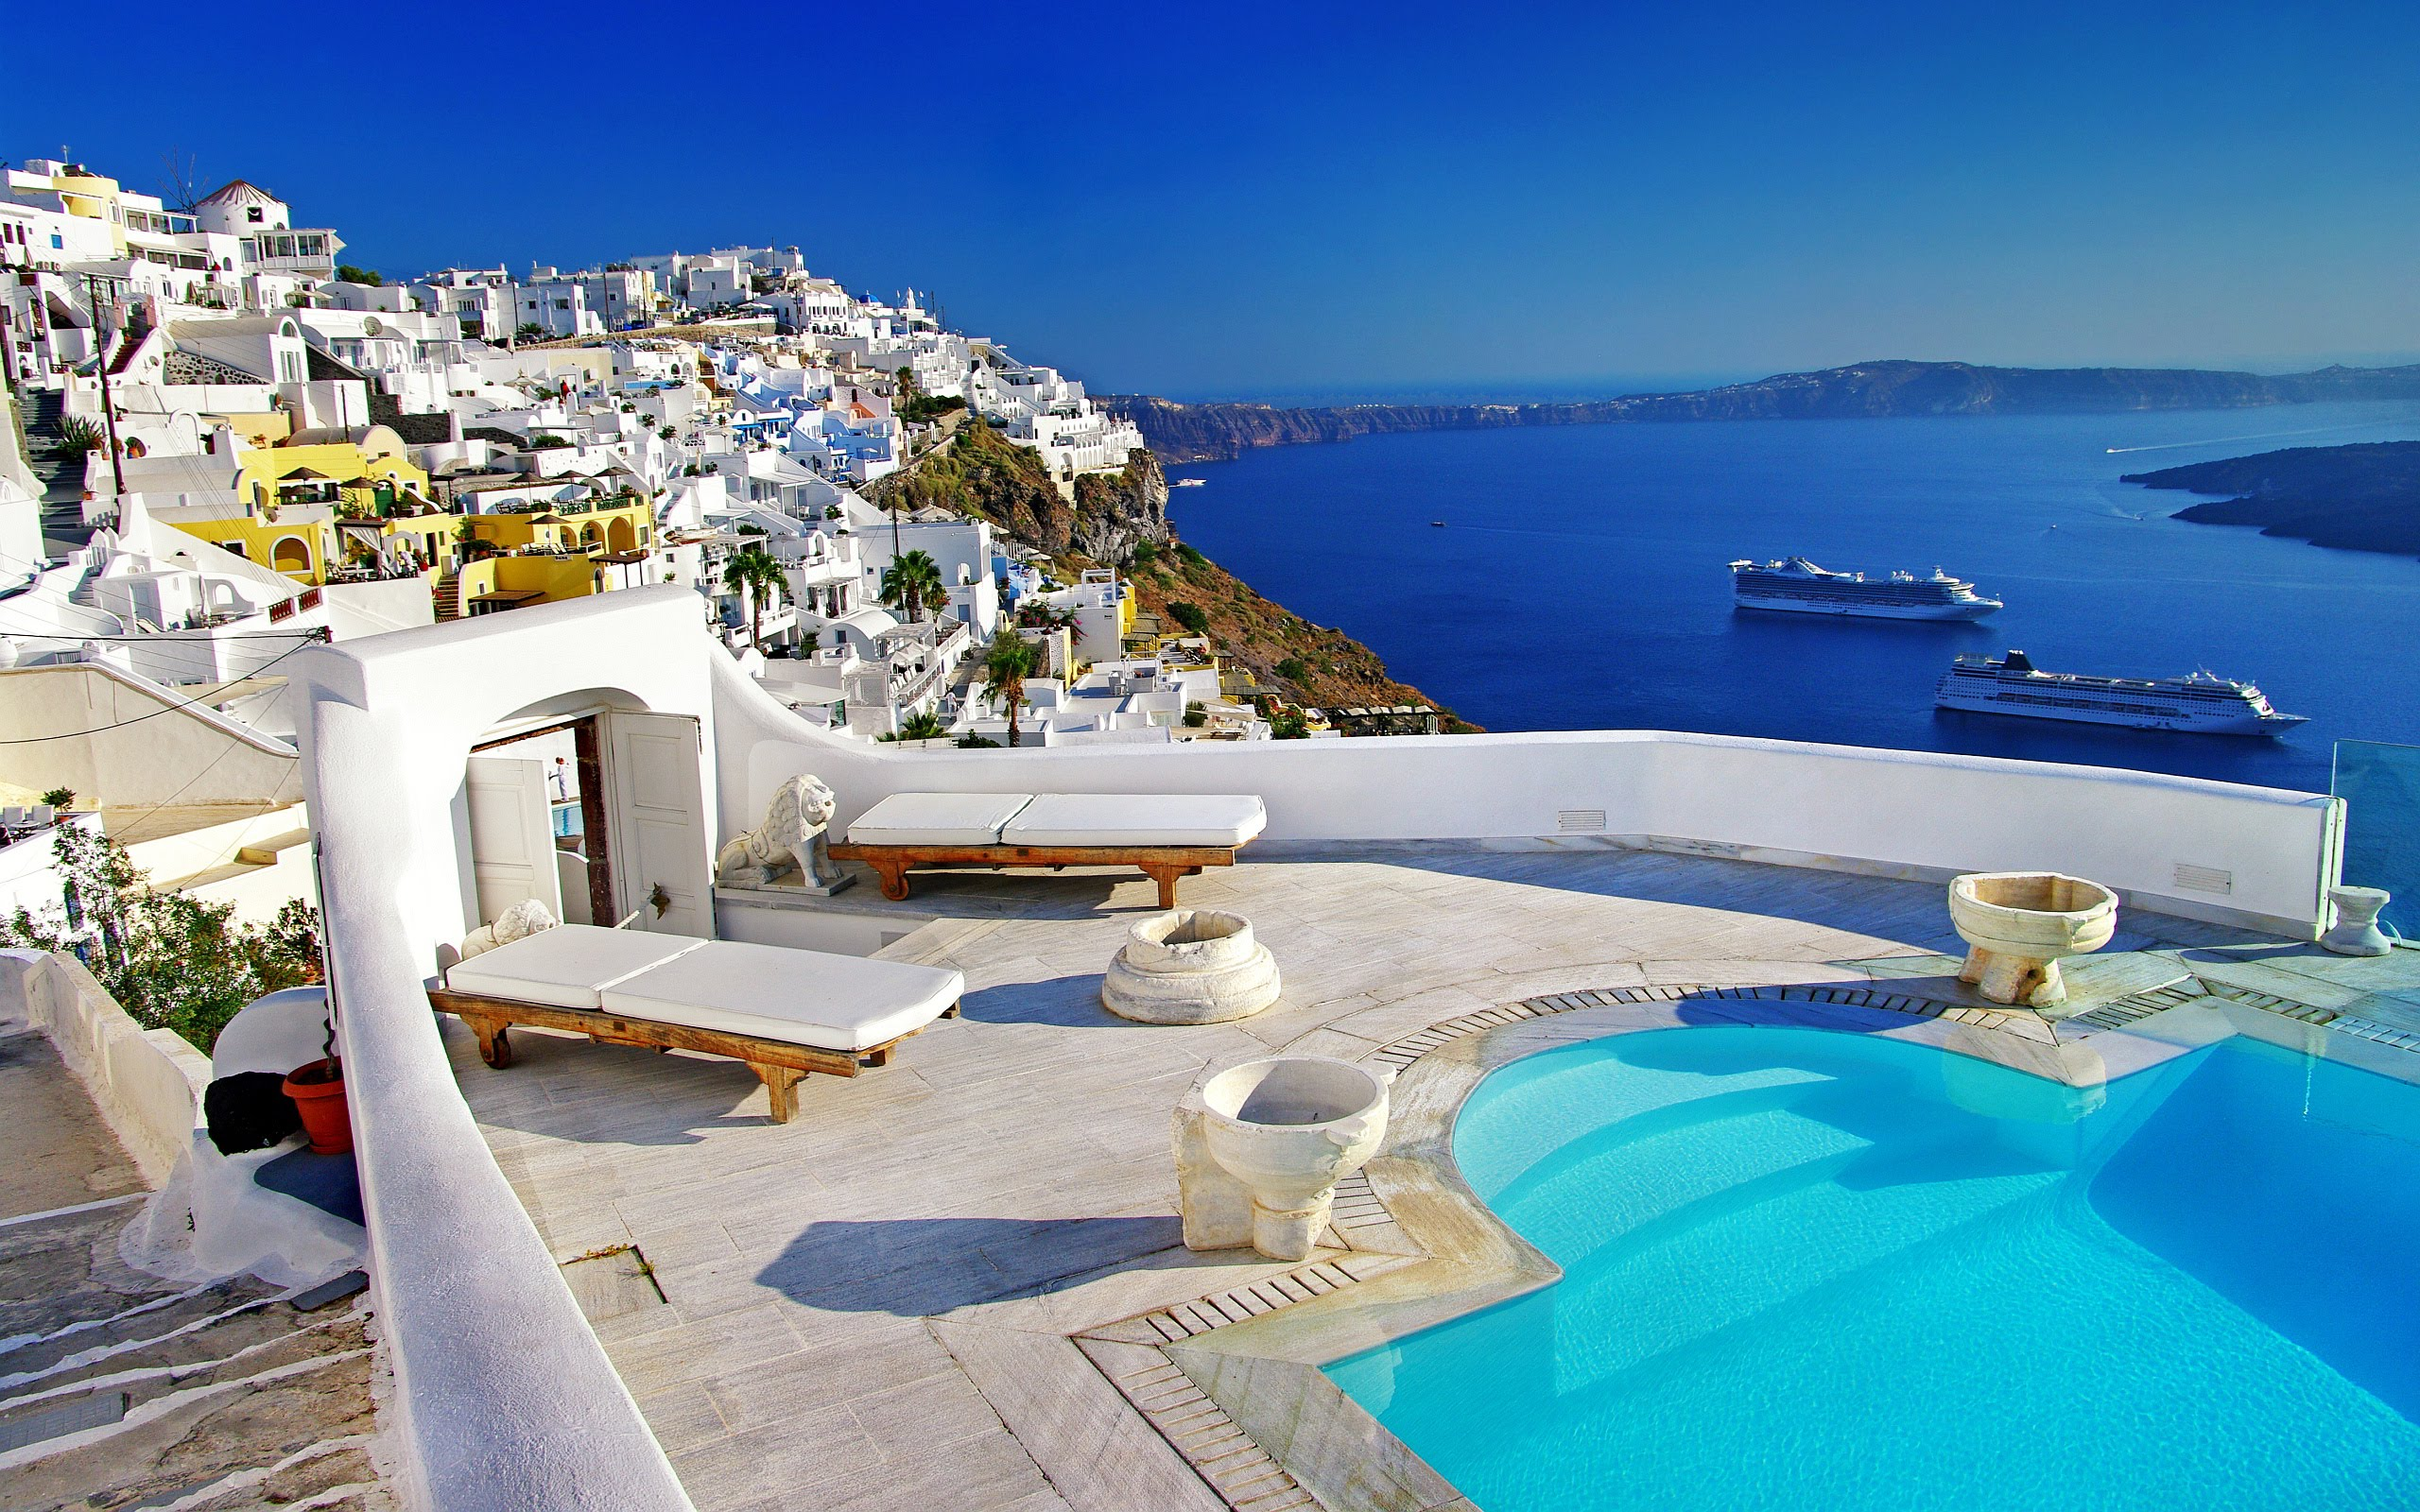 Greece (8 days / 7 nights)